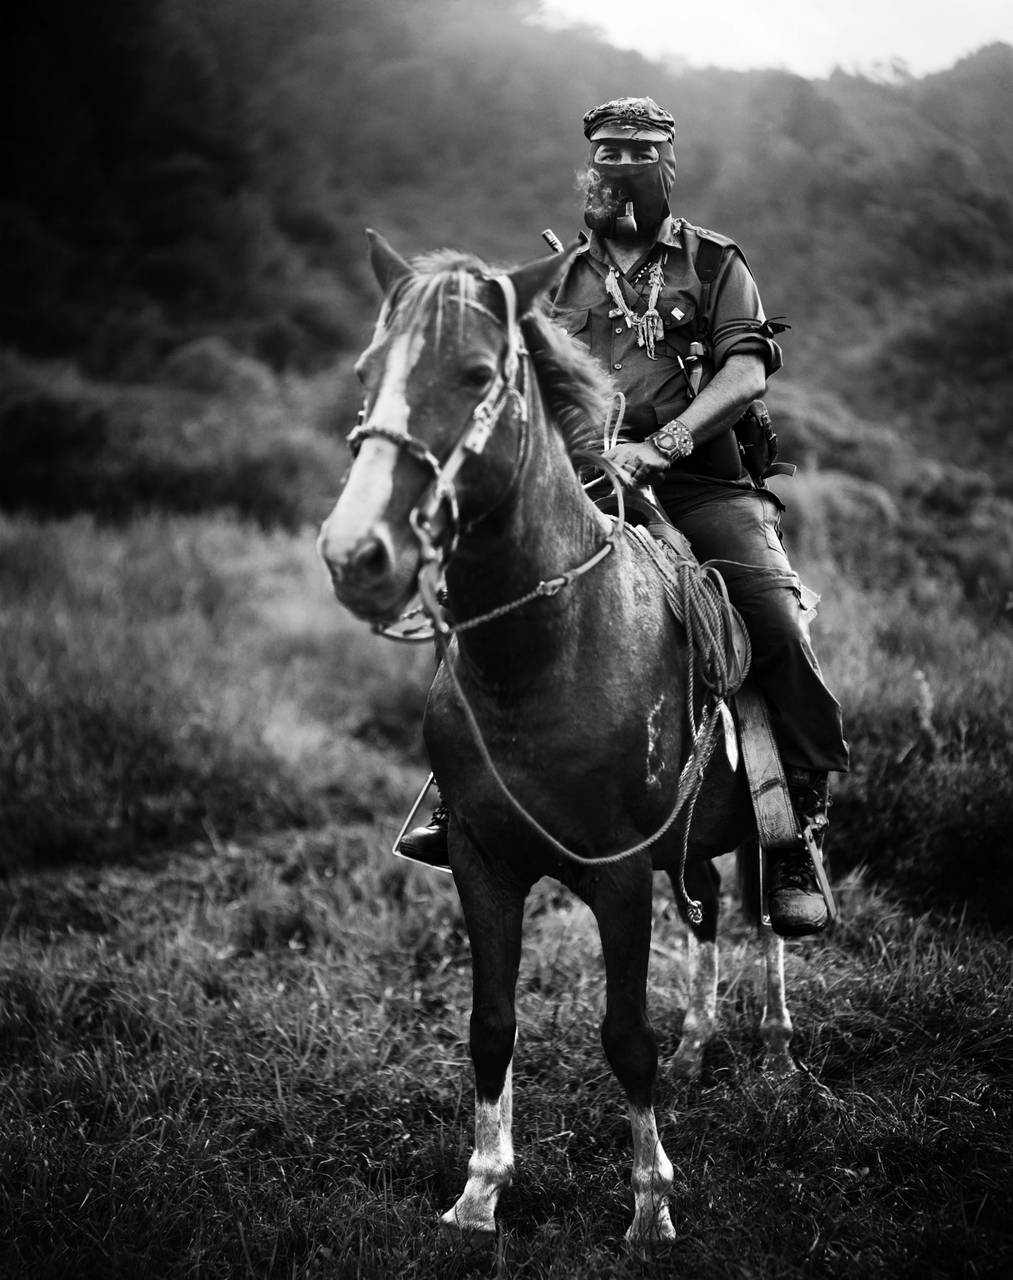 Subcomandante Marcos, smoking a pipe atop a horse in Chiapas, Mexico in 1996.